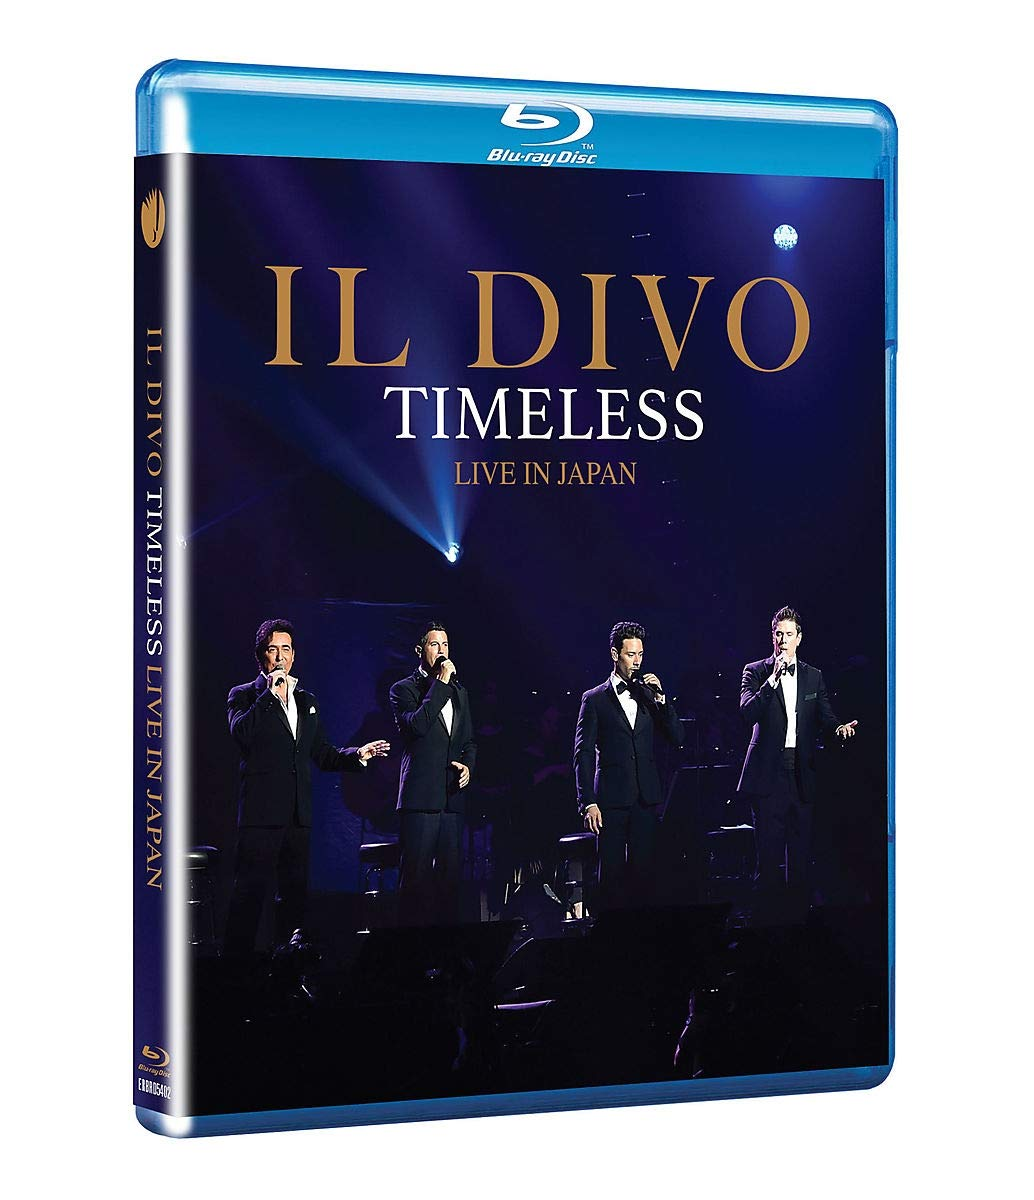 CD Shop - IL DIVO TIMELESS LIVE IN JAPAN